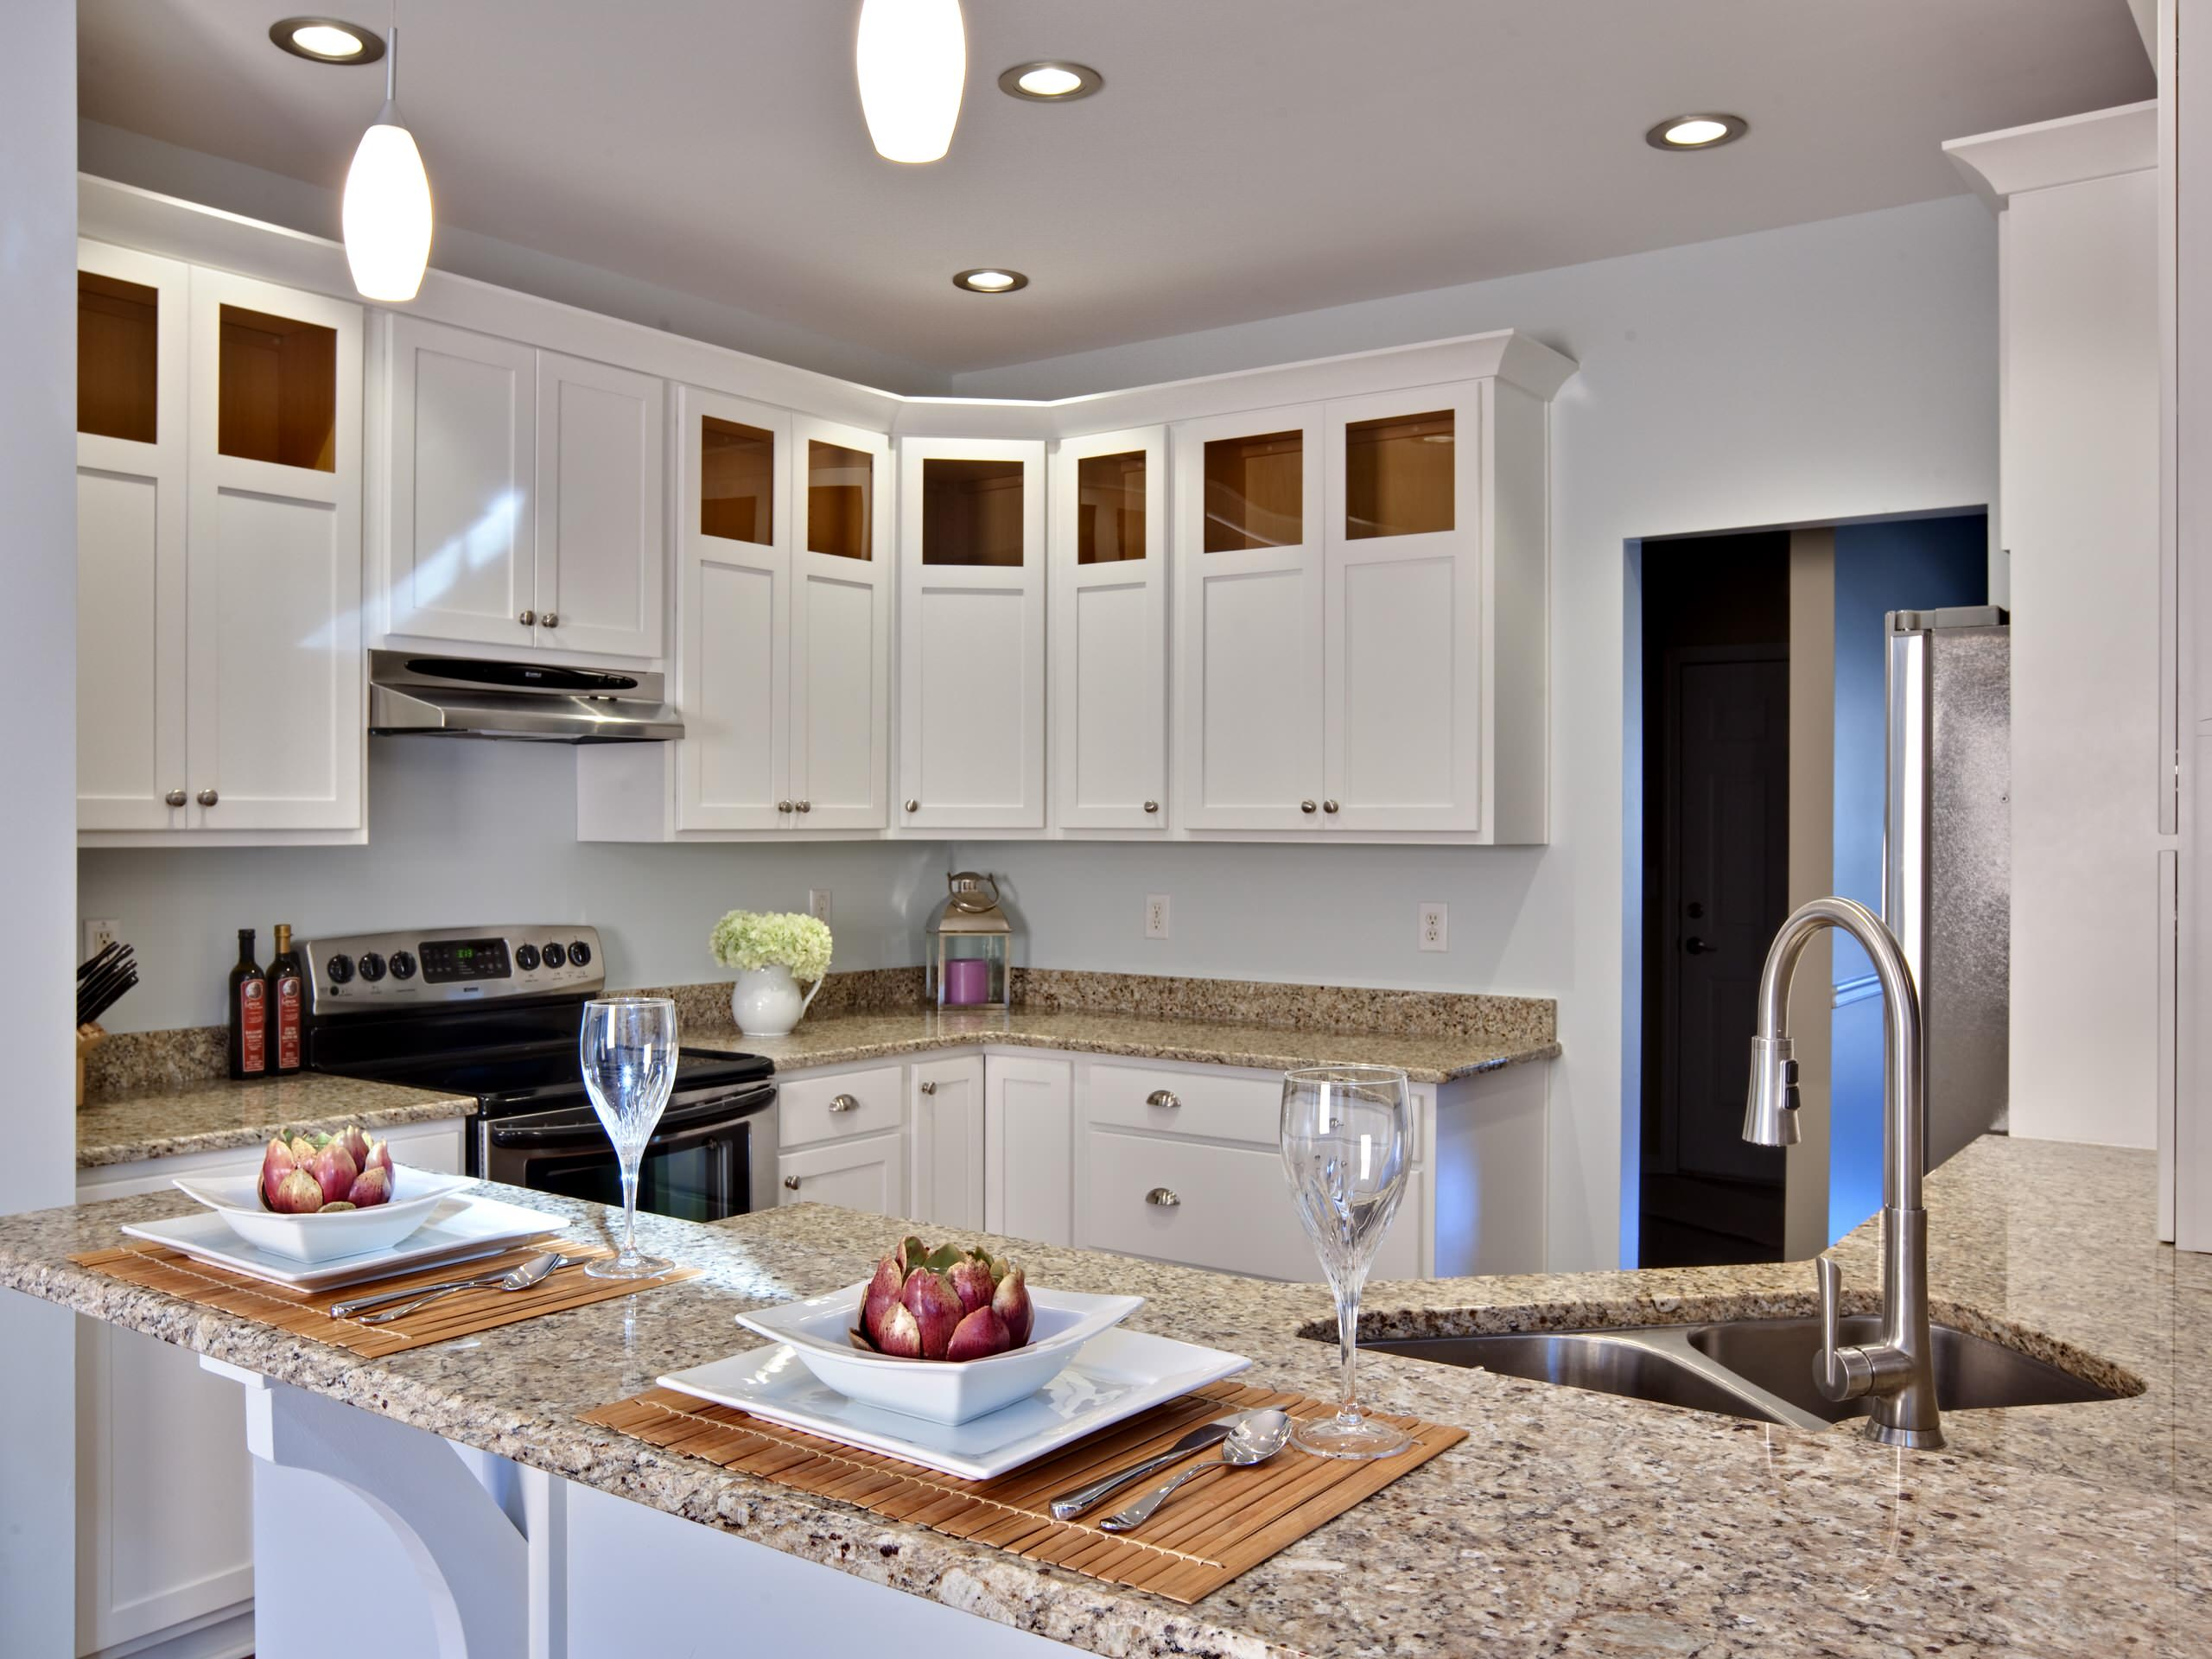 75 Beautiful Kitchen With White Cabinets And Granite Backsplash Pictures Ideas January 2021 Houzz